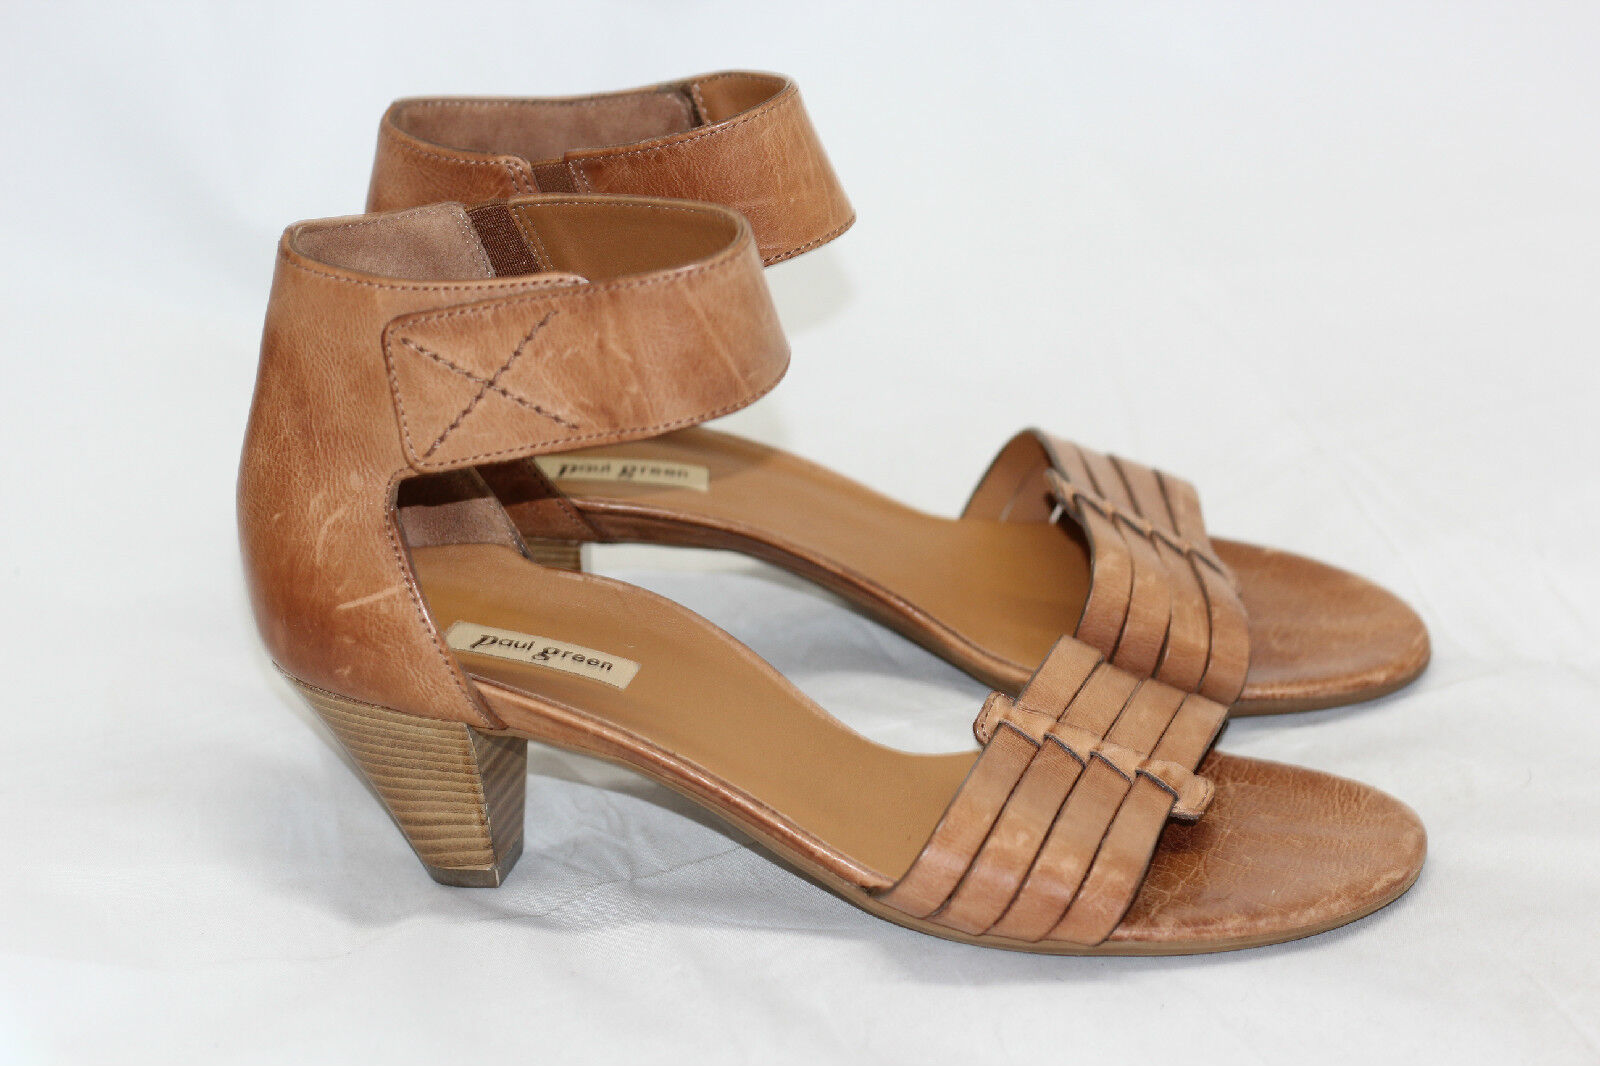 Paul Green 'Coco' Leather Ankle Strap Sandal - Cuoio Brown - 7.5US / 5UK (W22)